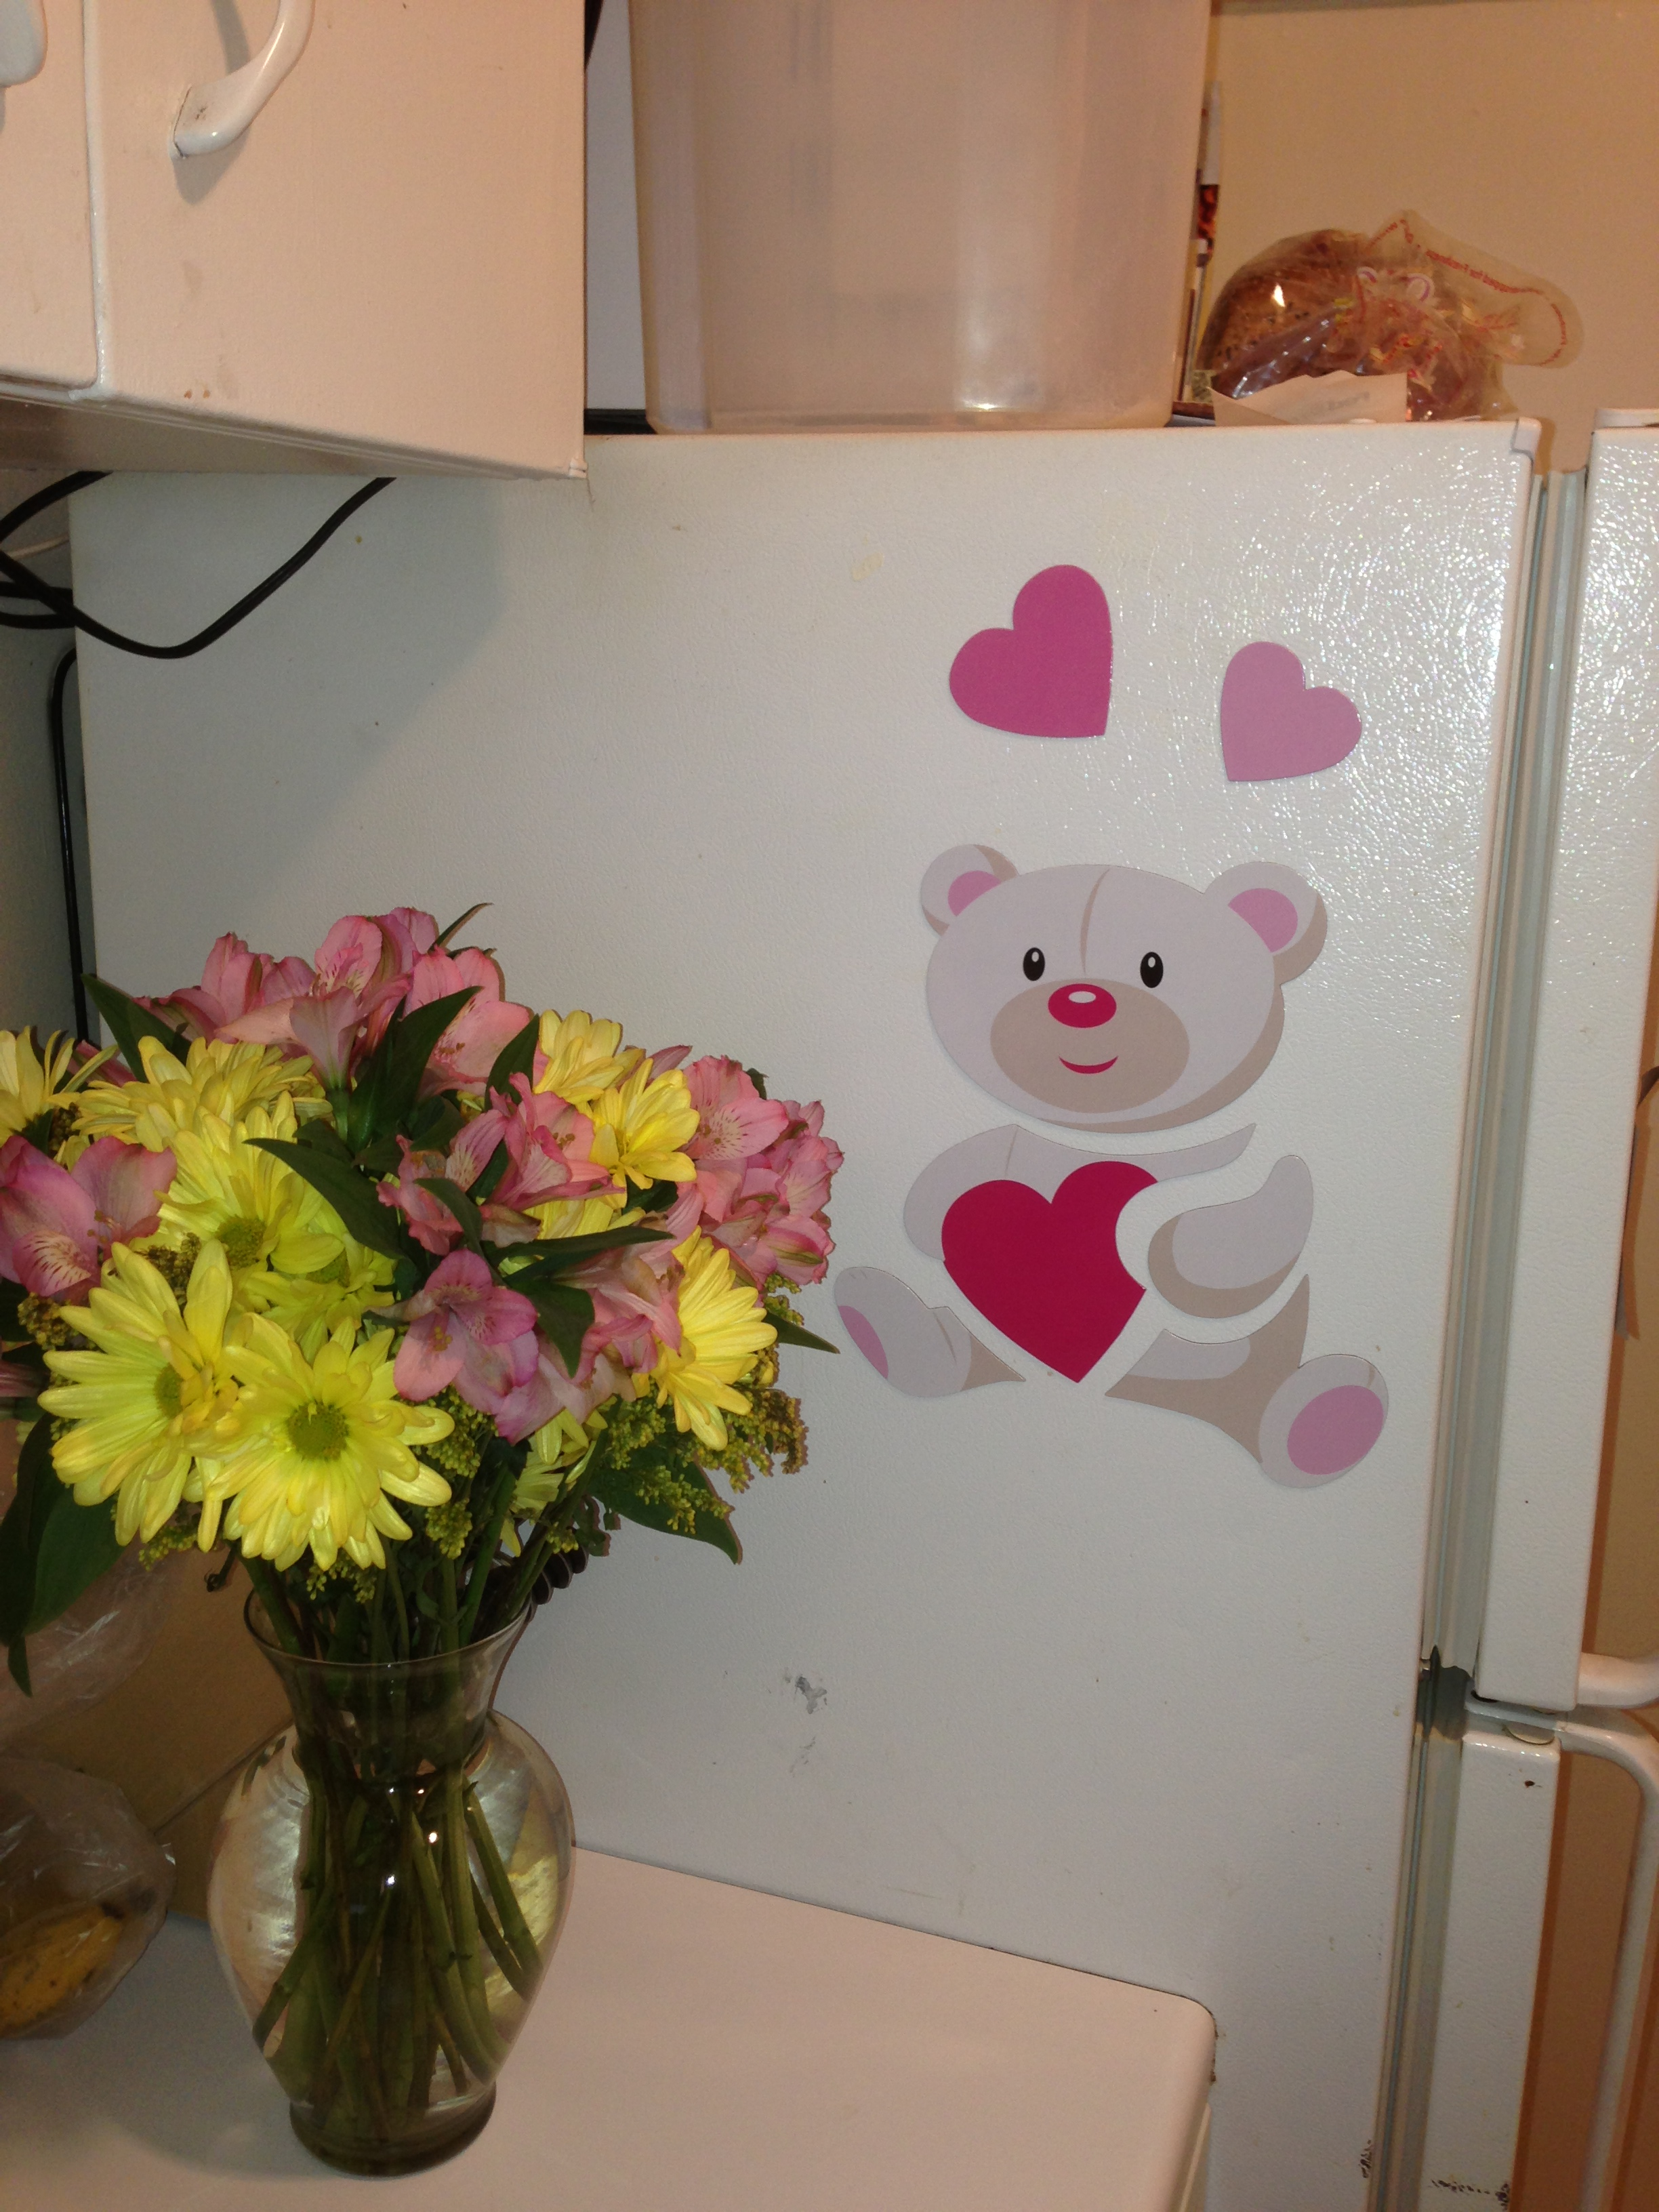 Kitchen Decorations   The Majestic Vision Wedding Planning   Valentine's Day in Milwaukee, WI   www.themajesticvision.com